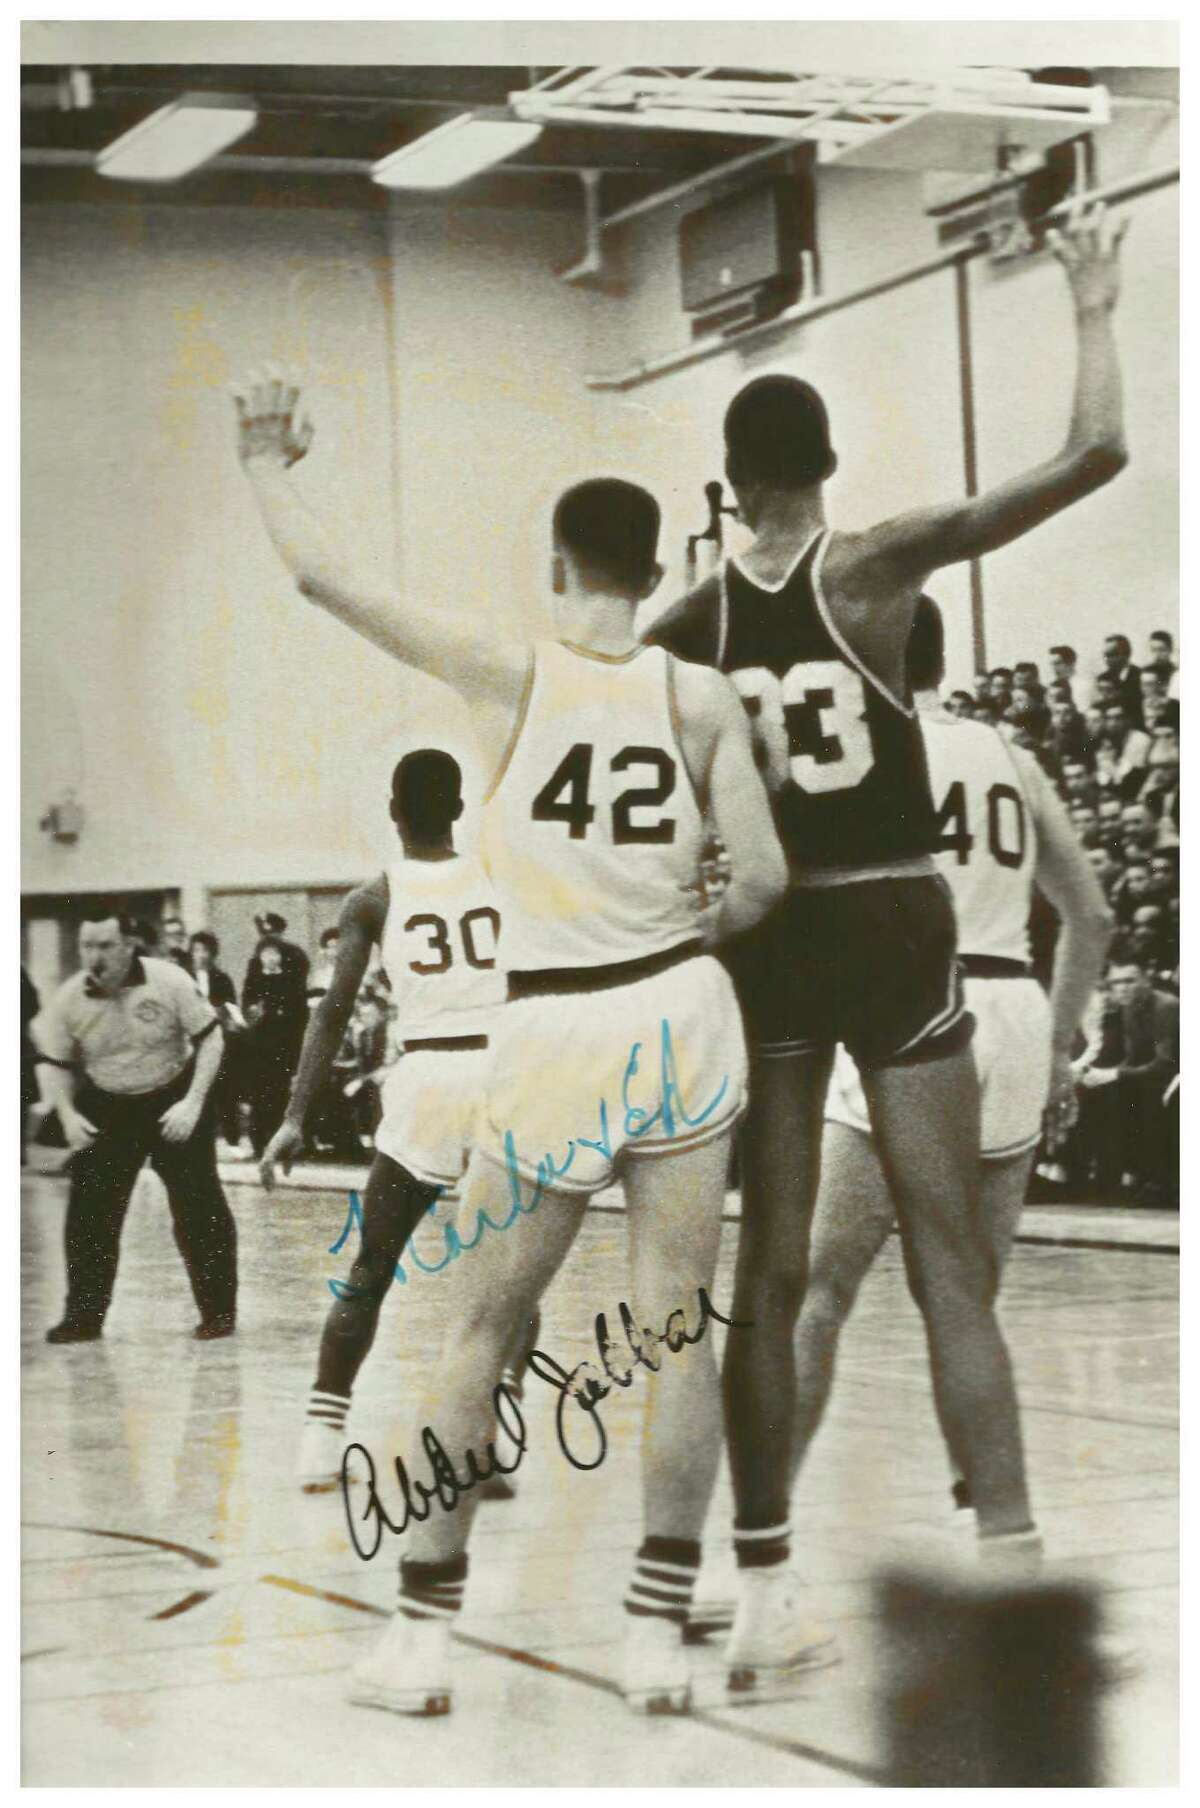 Bill Boehm, star Linton High School basketball player, guards a young Lew Alcindor (now Kareem Abdul-Jabbar) during a game in 1961 at Linton. Jabbar's autograph can be seen on the photo. Boehm's sister, Carla Boehm Sloan, who provided this photo from her family's scrapbook, sent the photo to Jabbar in recent years who authgraphed it for her.